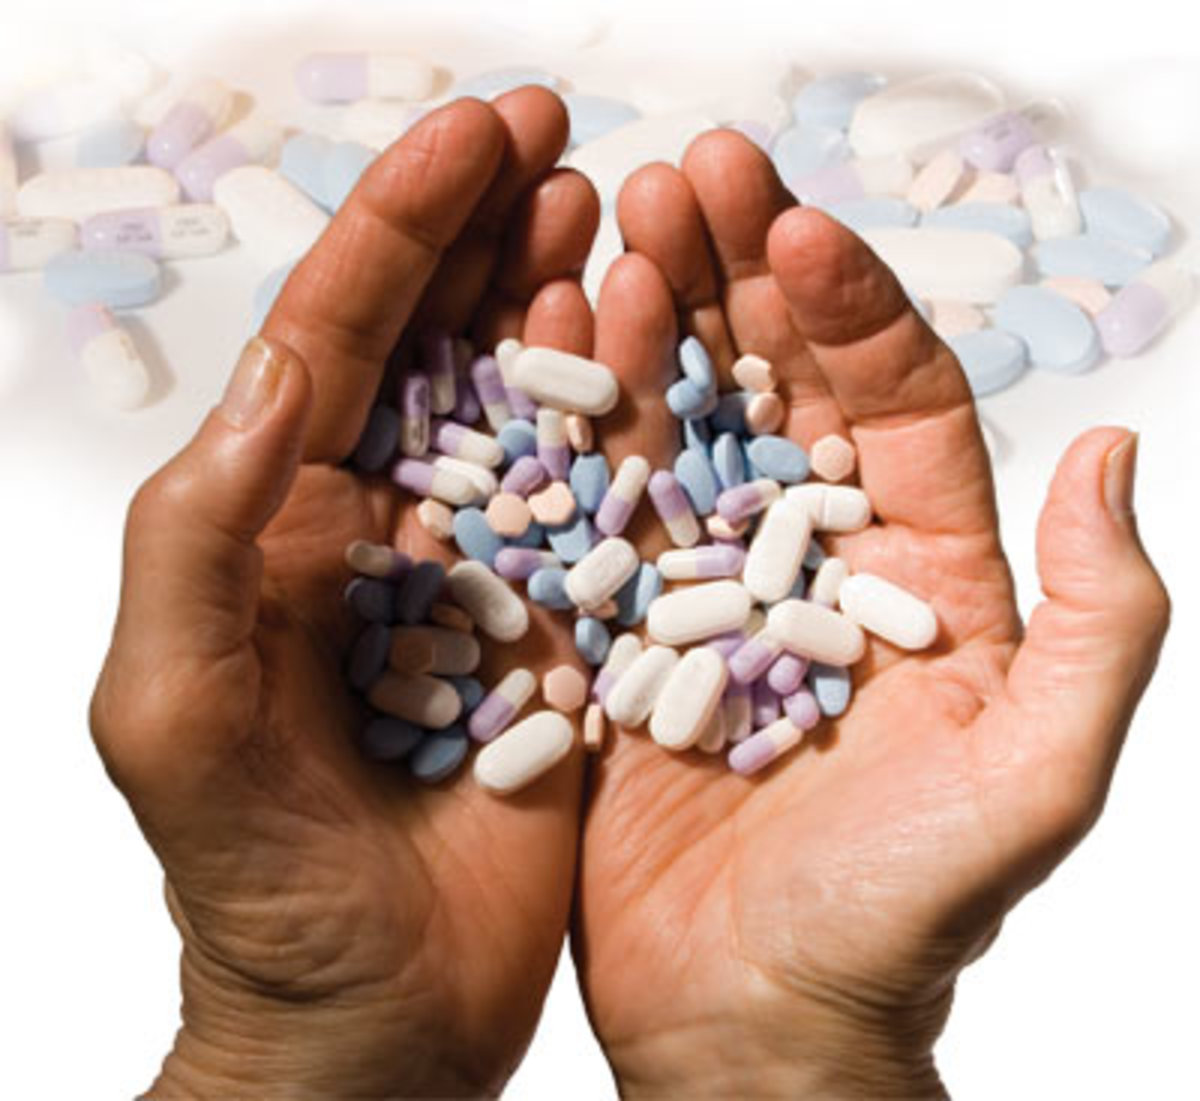 Prescription Drugs or Vitamins and Supplements?